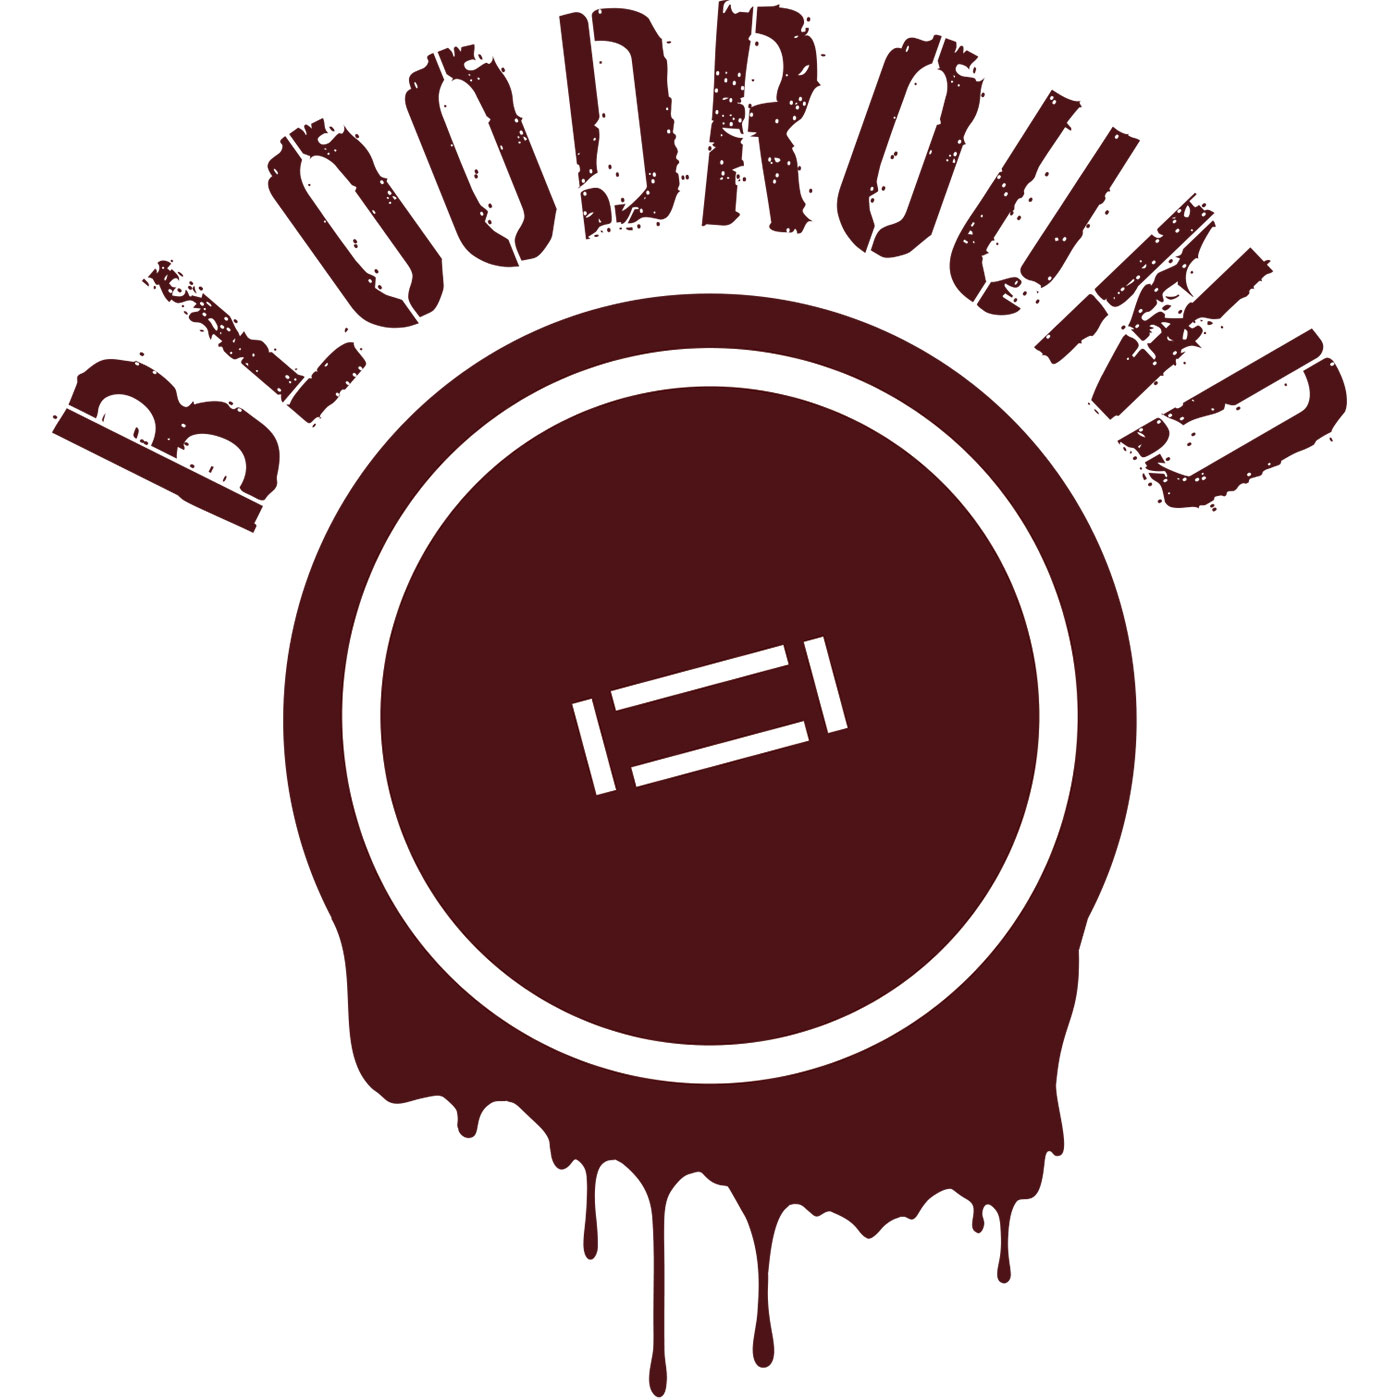 721559fd322 Bloodround Wrestling Podcast by Bloodround.com on Apple Podcasts